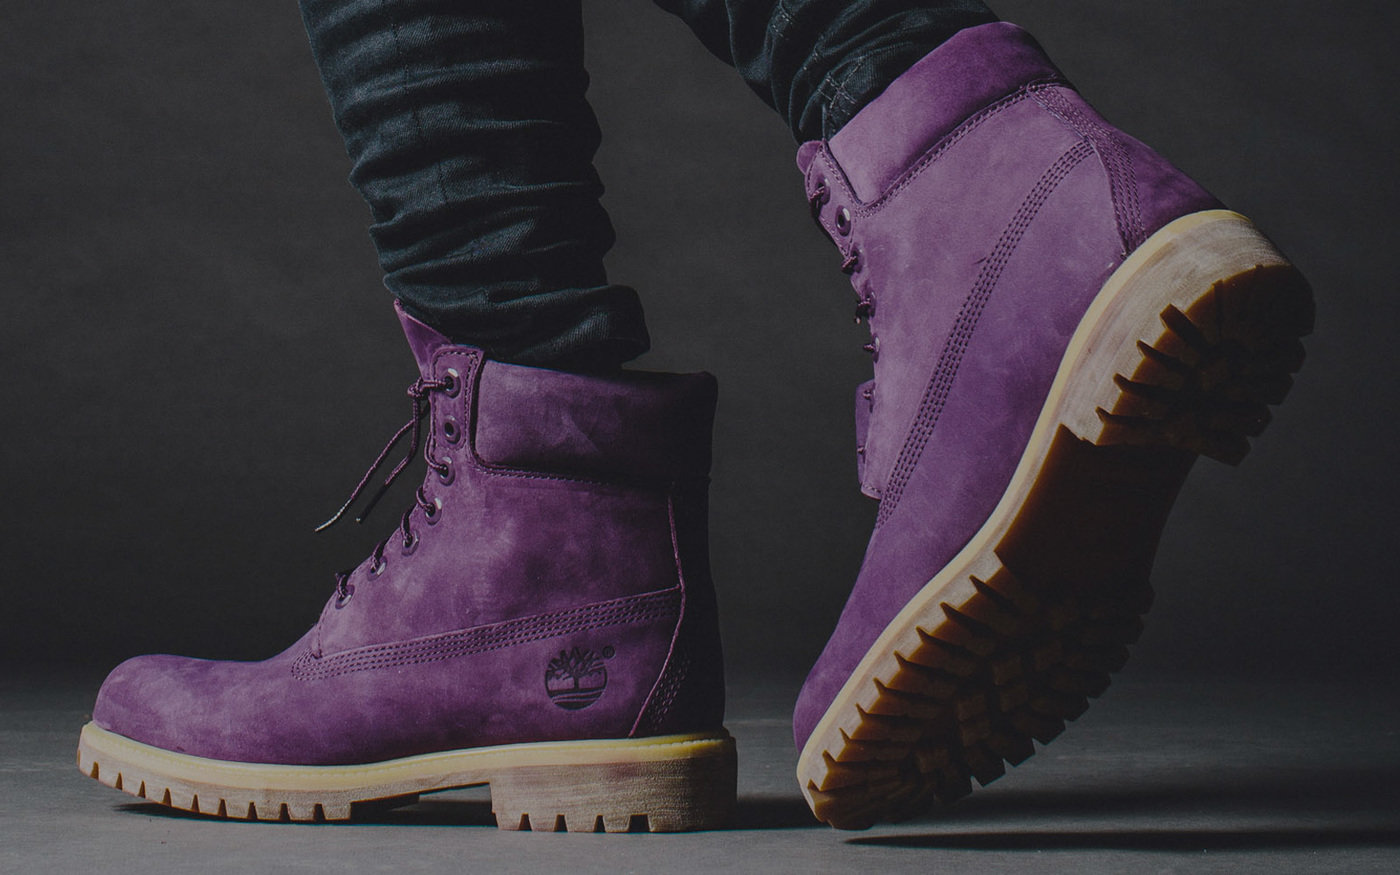 140f785a6e05 Villa x Timberland  Purple Diamond by Aaron Kincaid at Coroflot.com